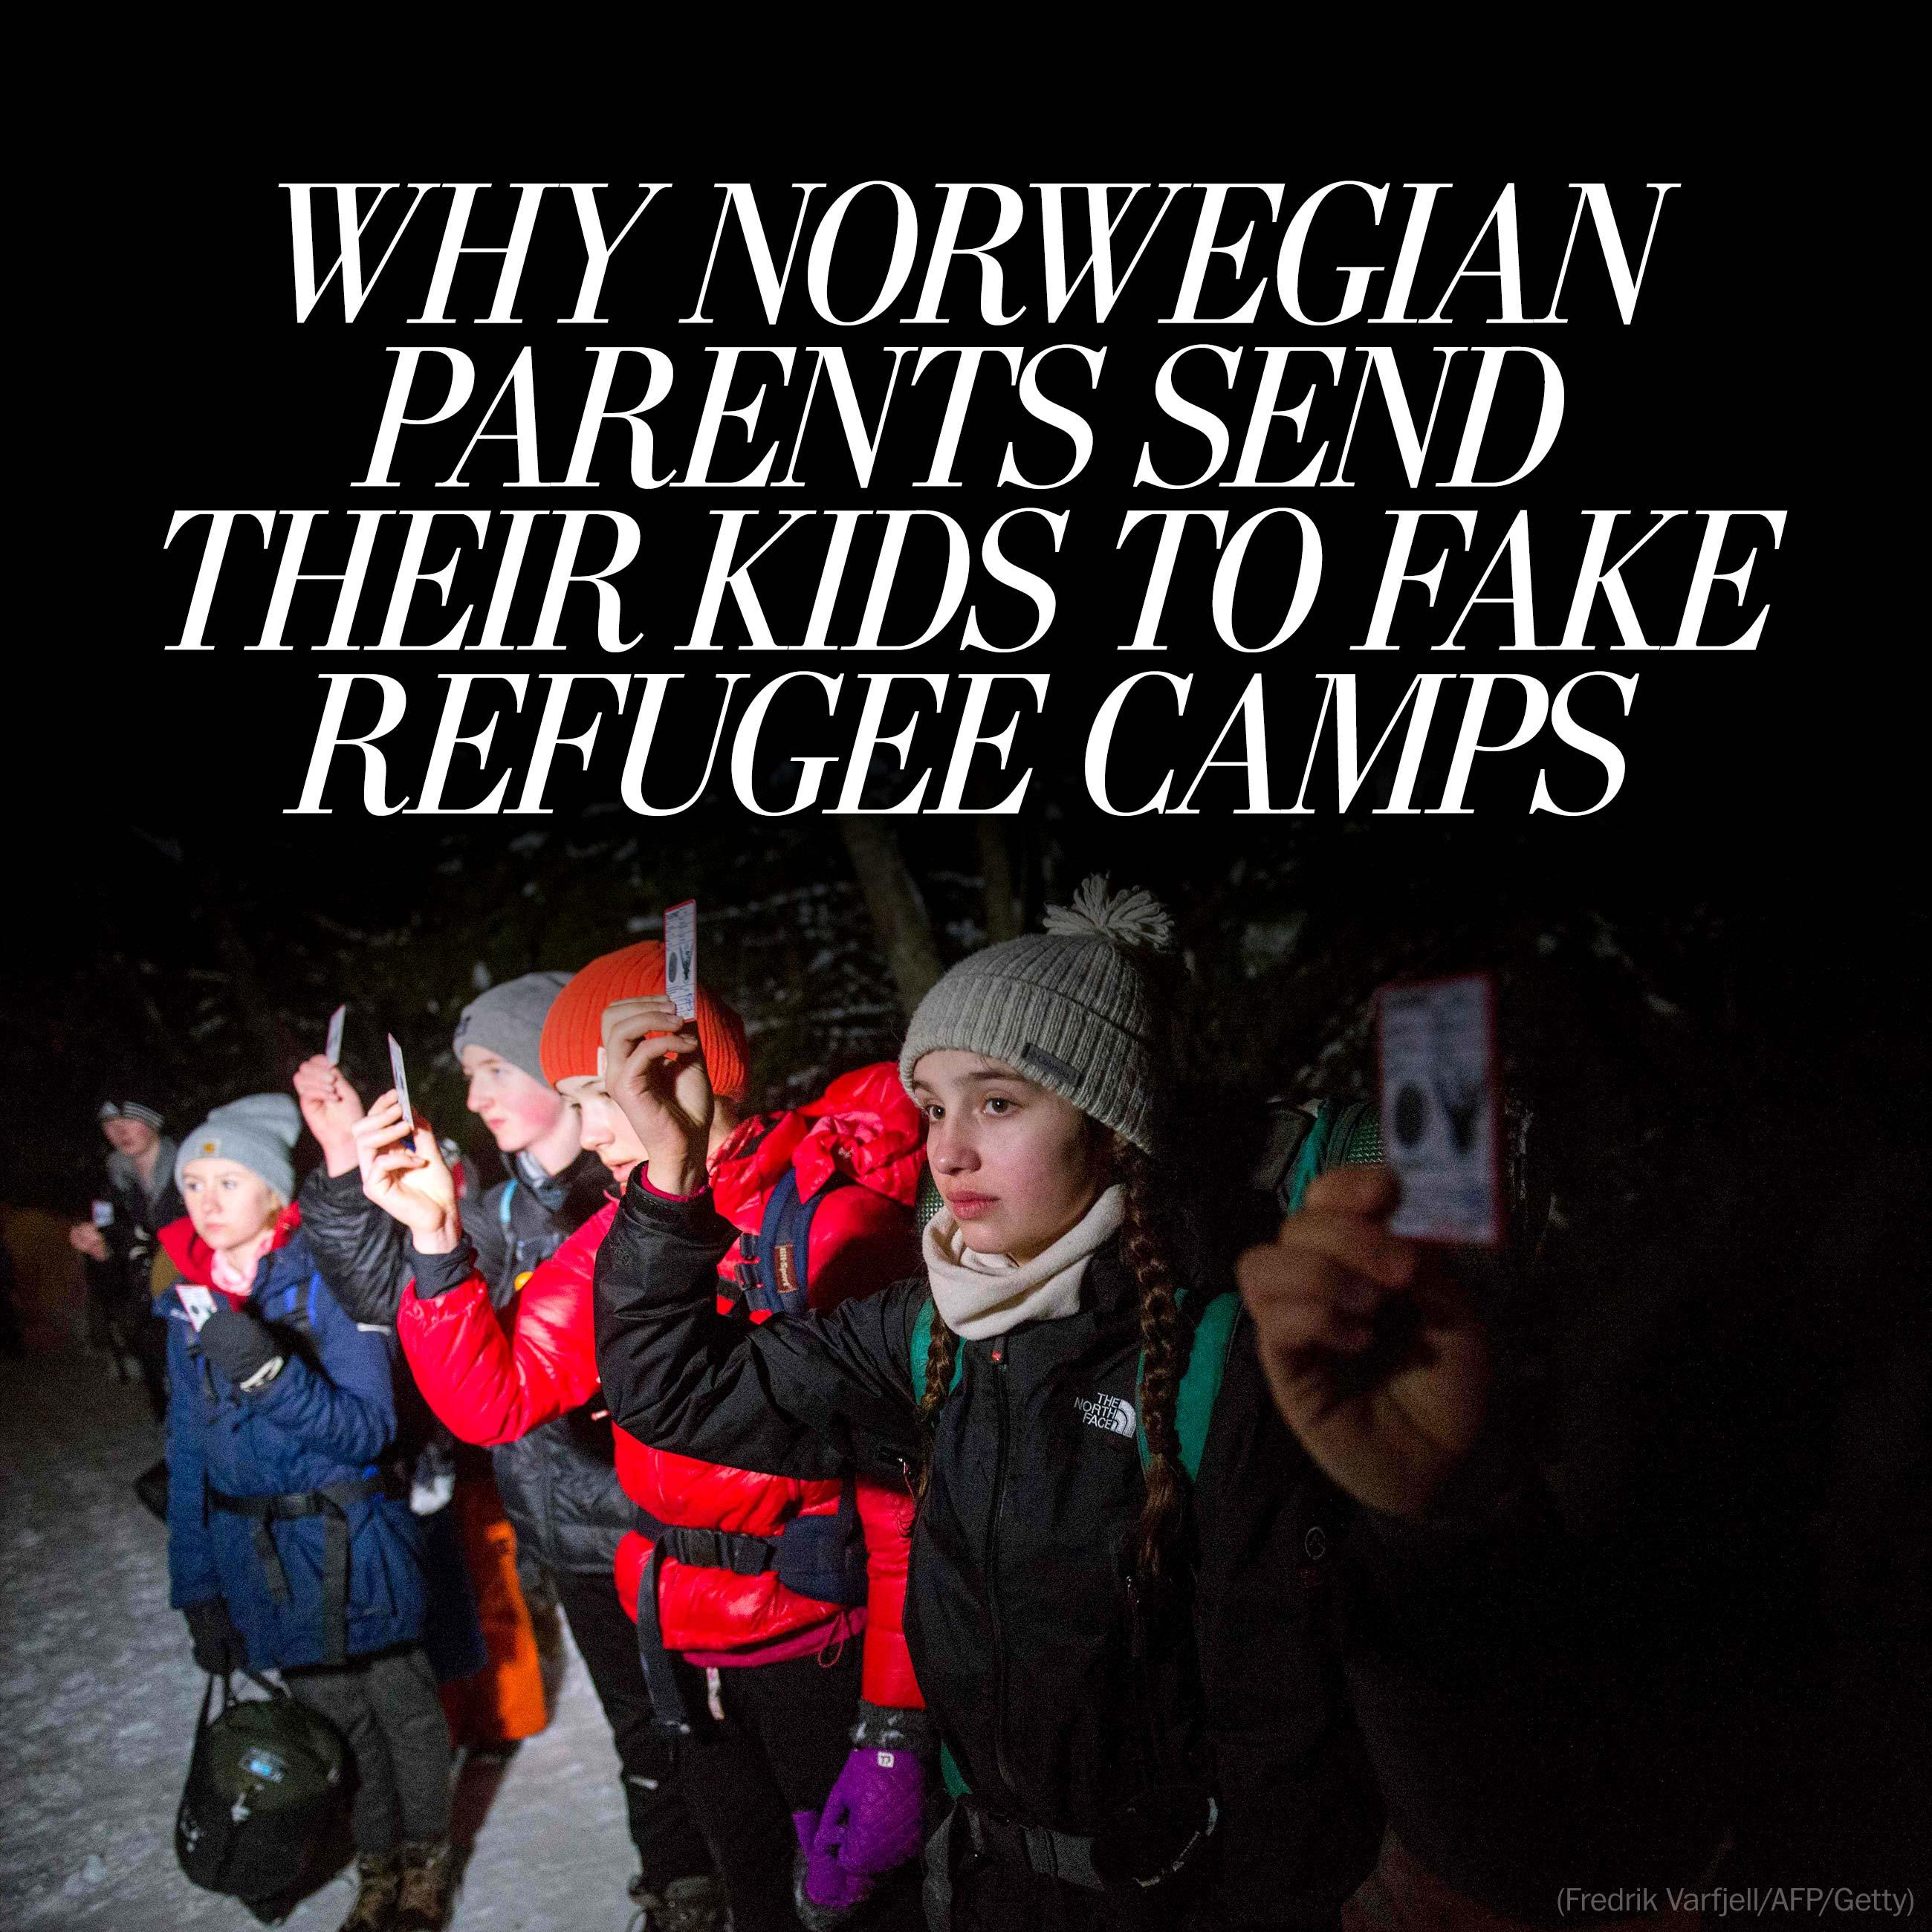 Why Norwegian parents are sending their kids to live in fake refugee camps